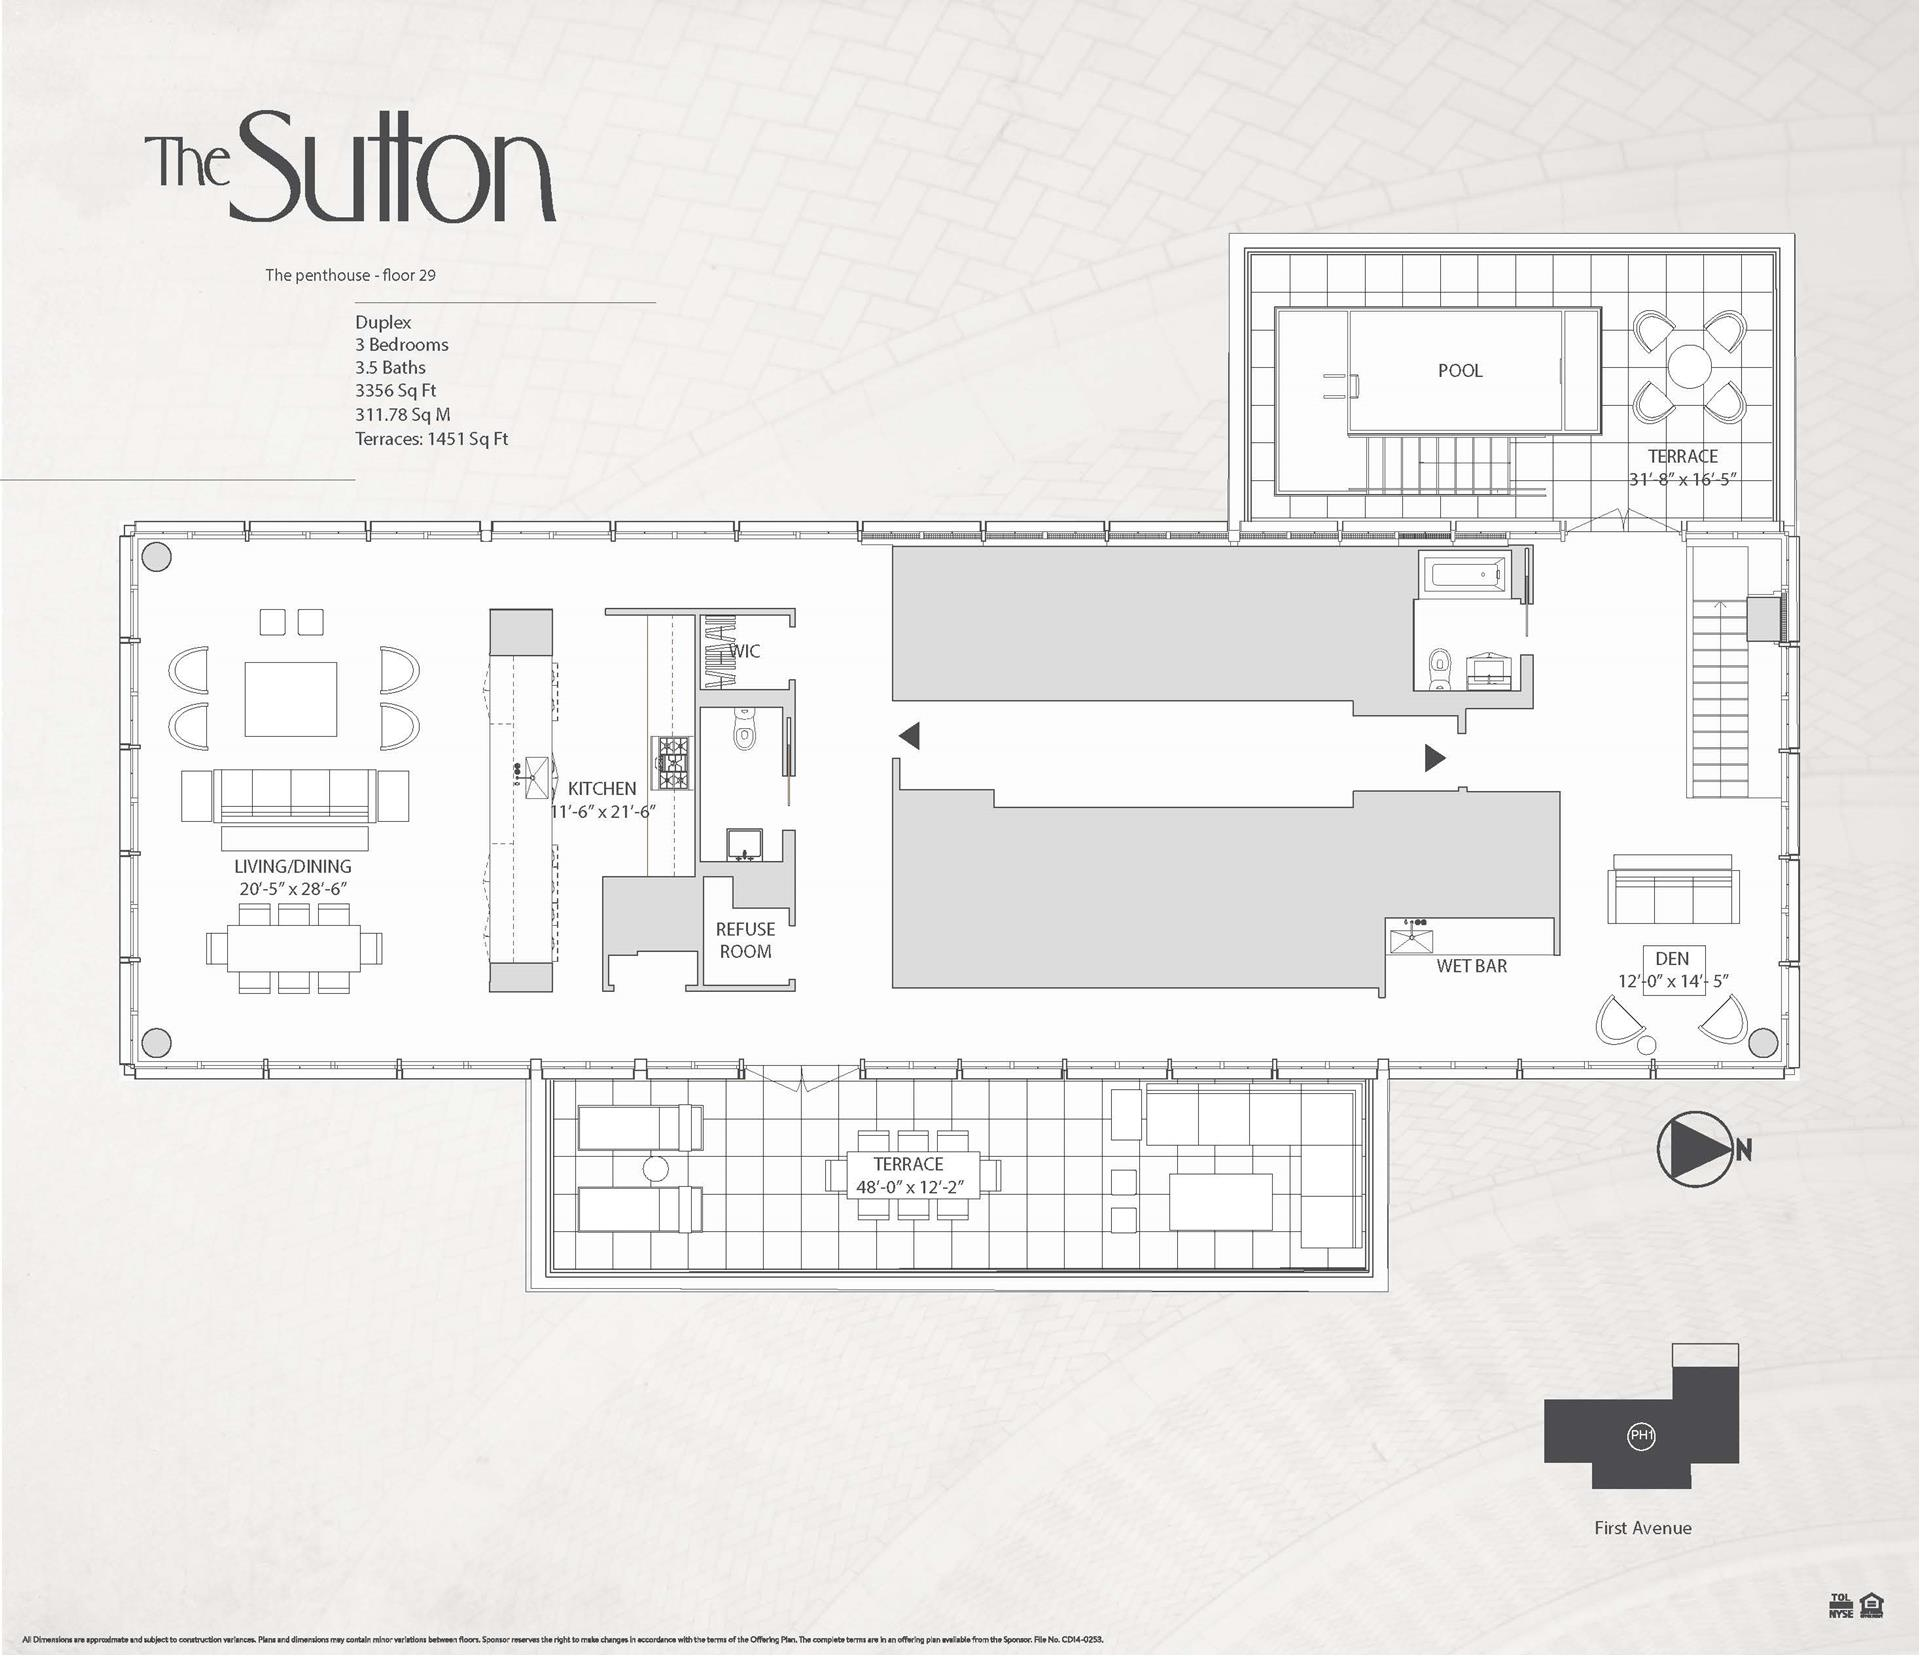 Floor plan of The Sutton, 959 First Avenue, PH1 - Sutton Area, New York